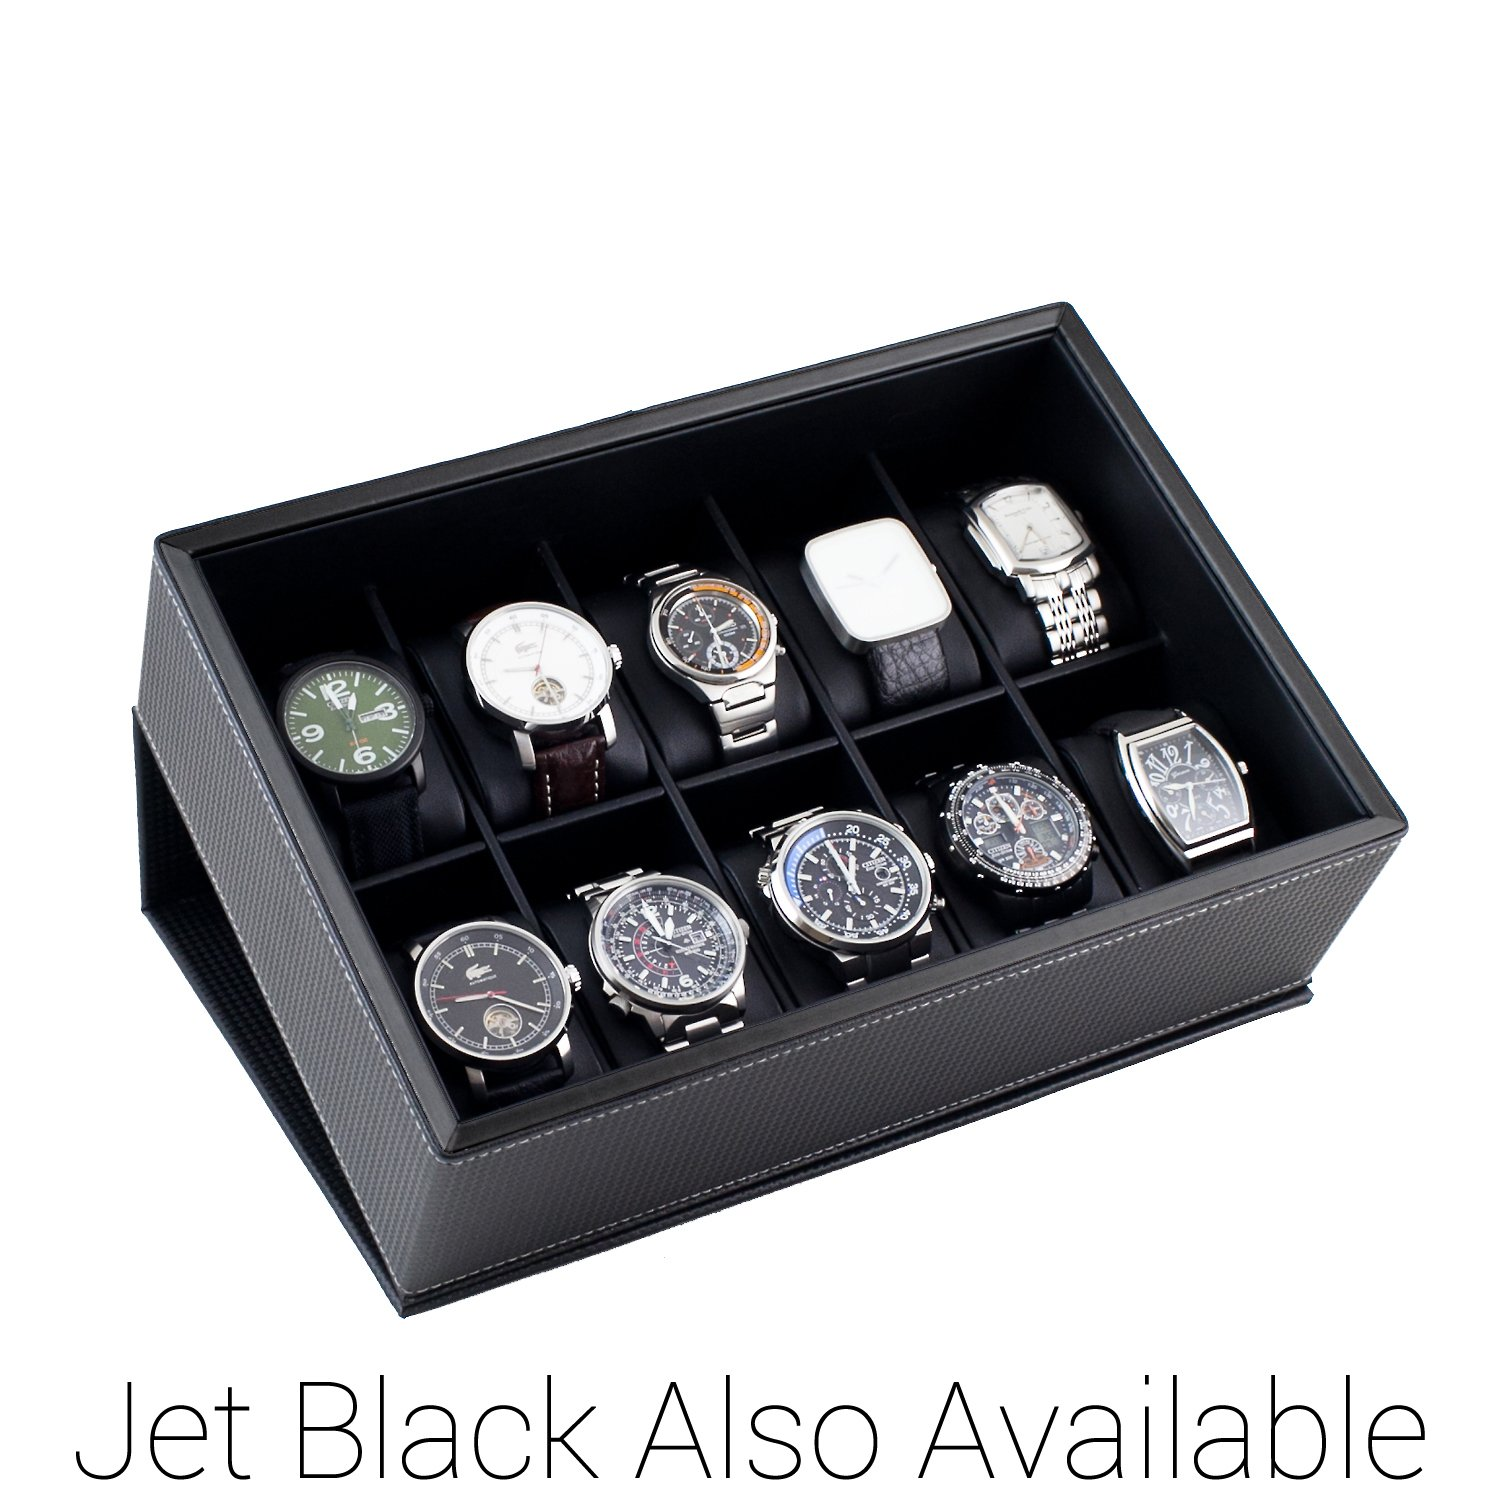 Caddy Bay Collection Watch Case Display Box Holds 10 Large Watches with Black Carbon Fiber Pattern Exterior and Krypton Green Trim